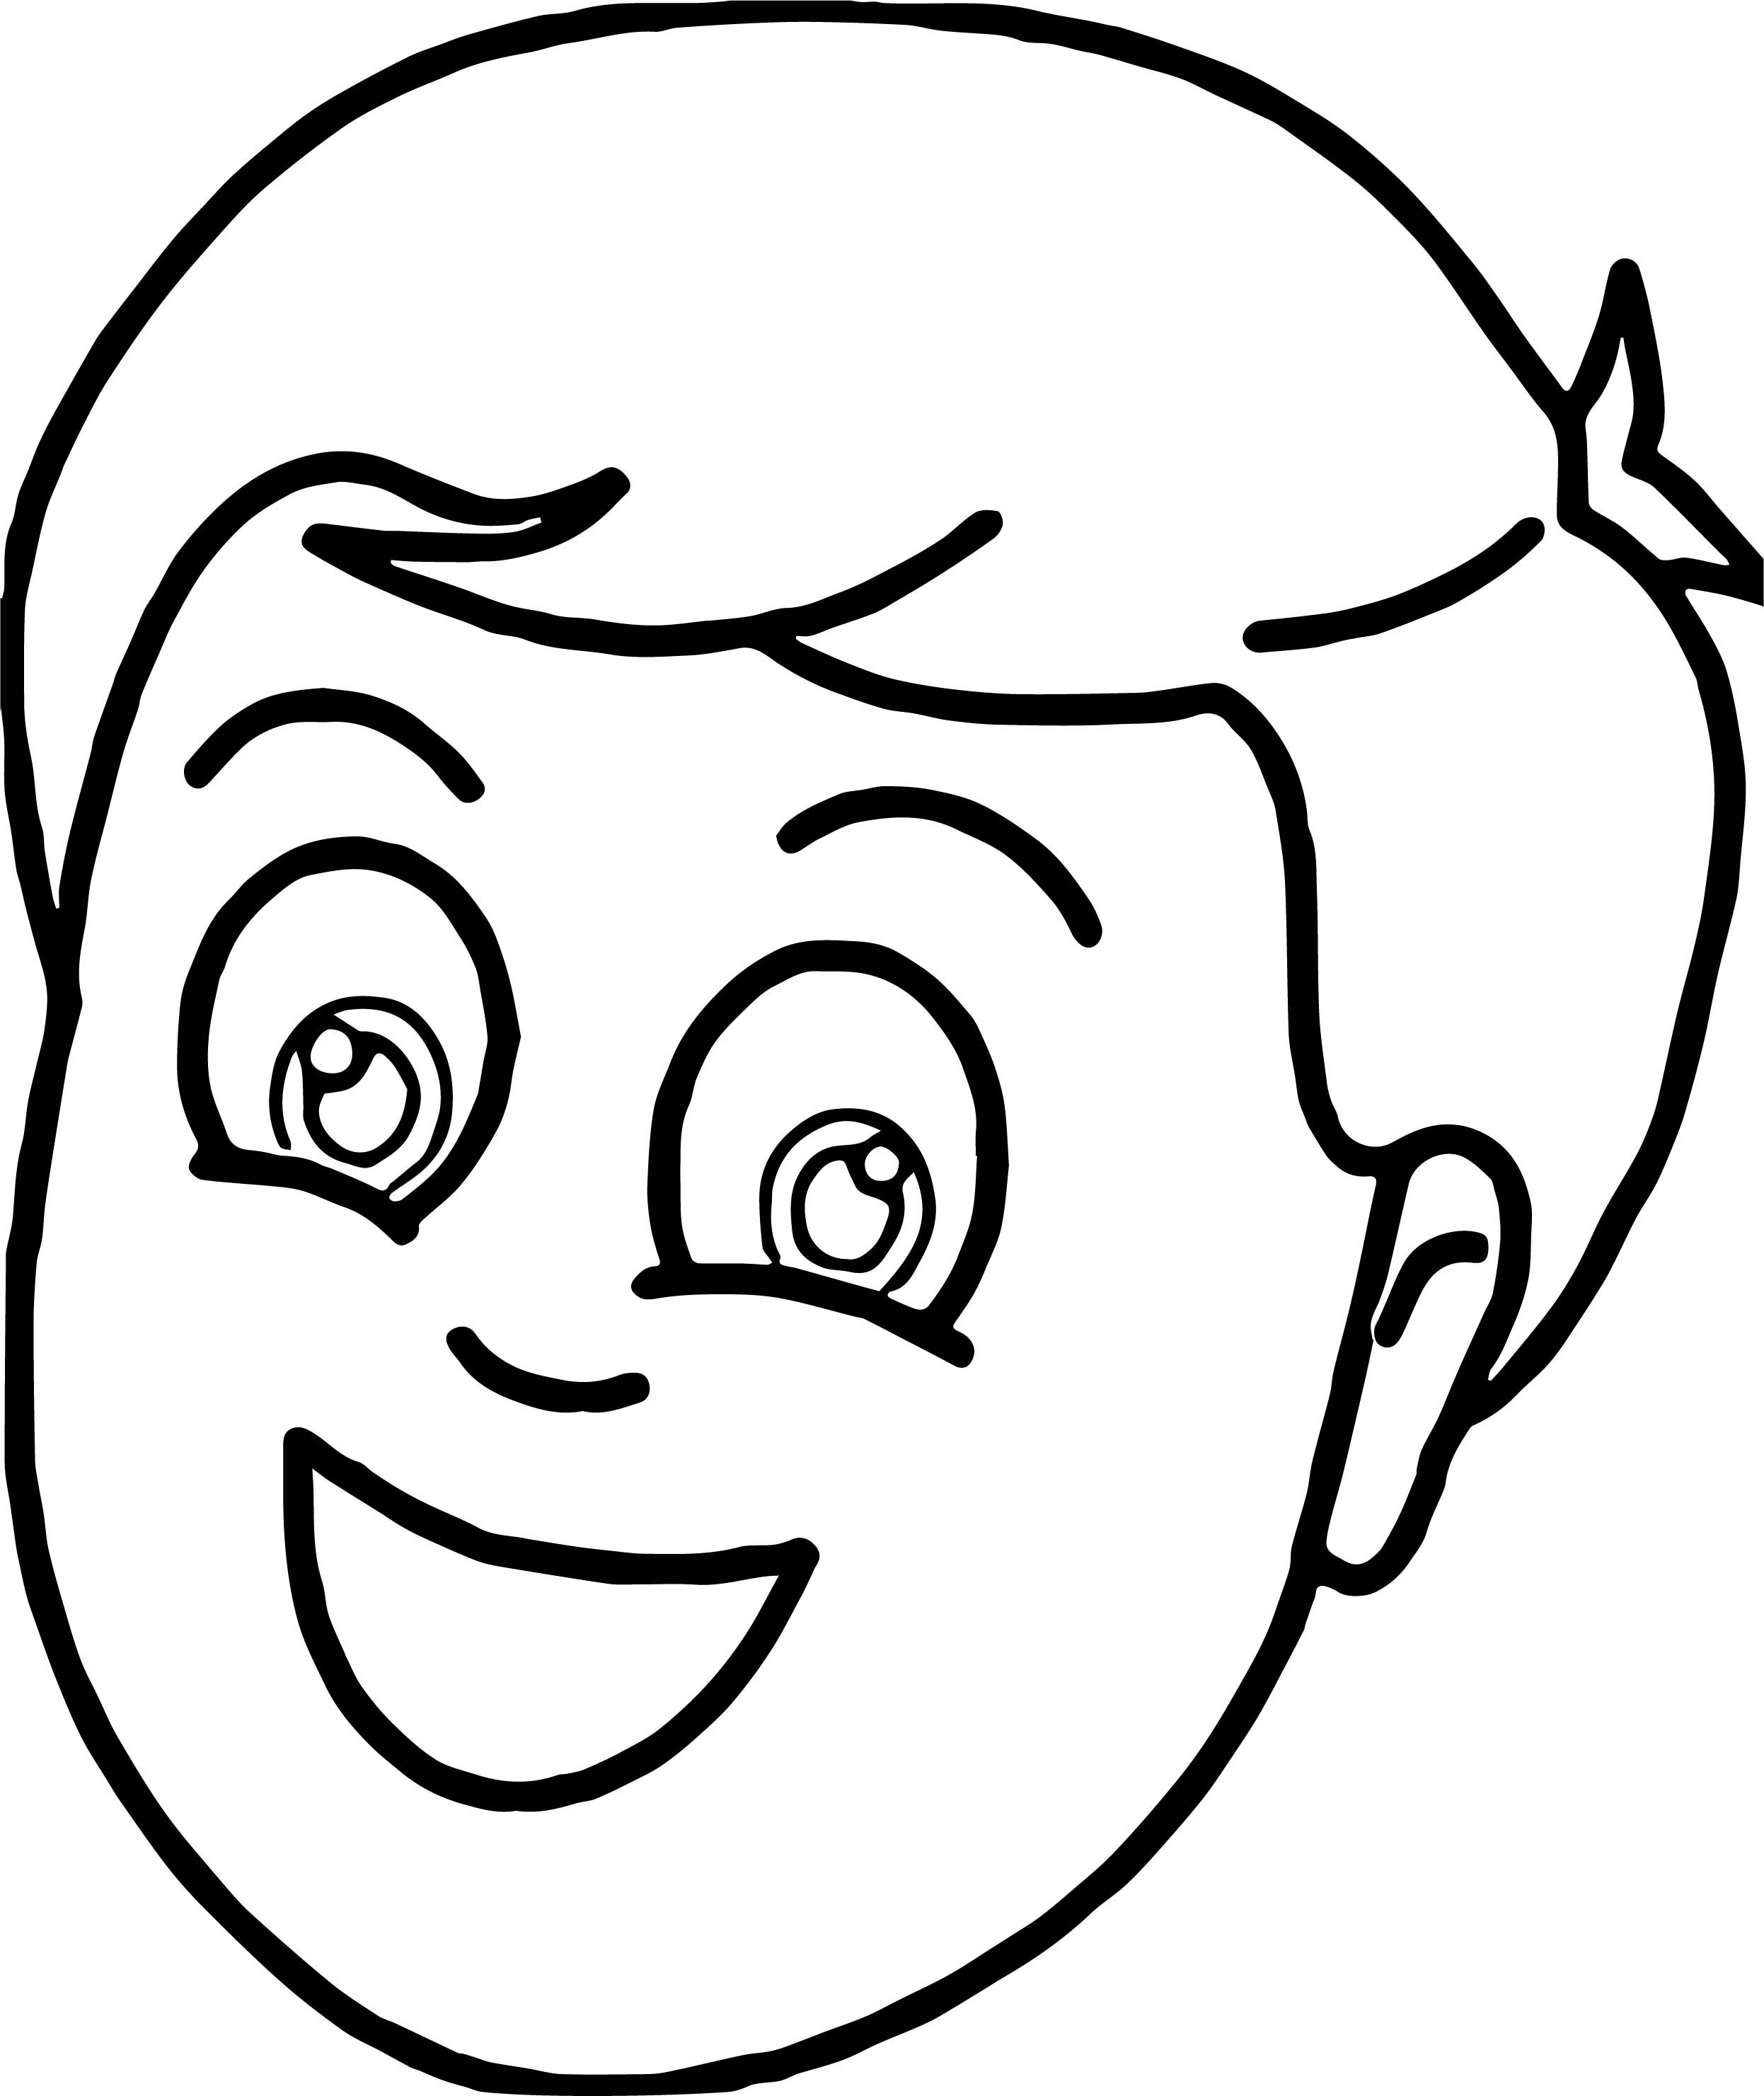 awesome Tn Boy Smiling Face Coloring Page | Coloring pages for boys, Coloring  pages, Boy coloring